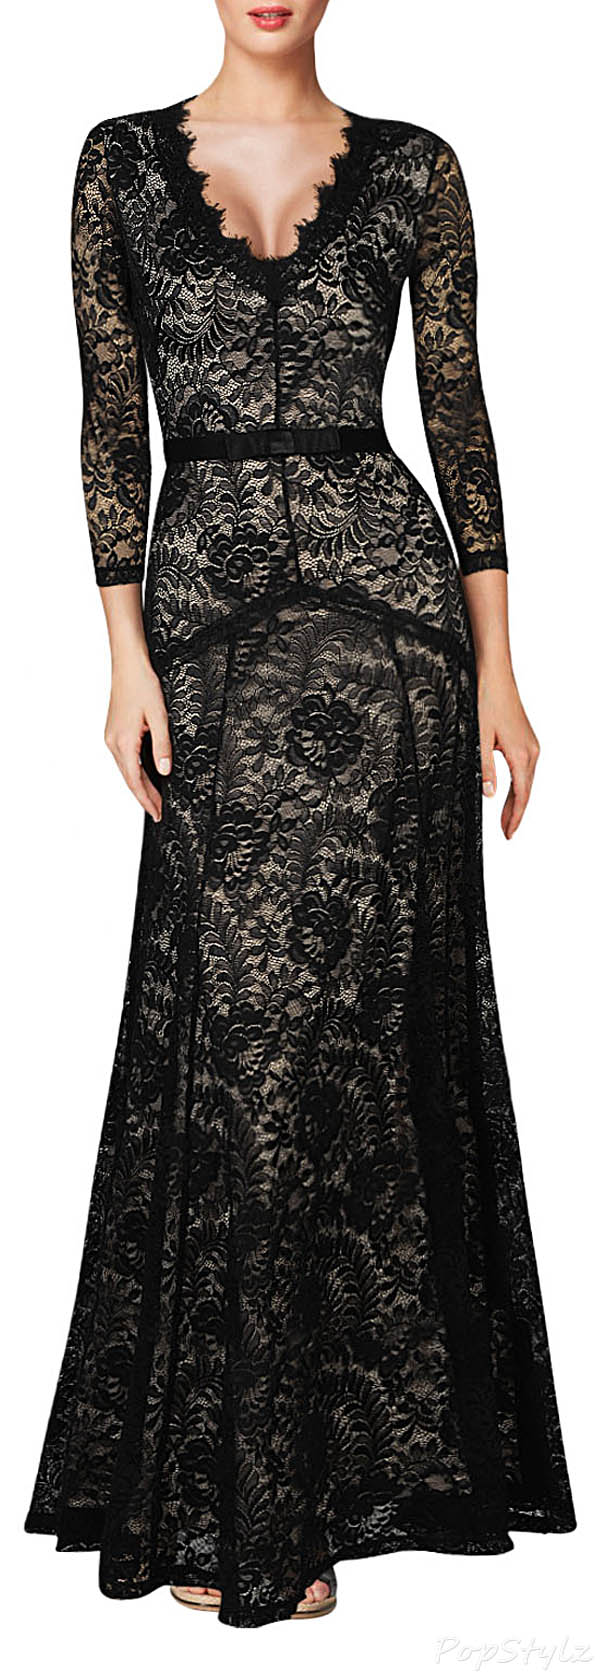 MIUSOL Floral Lace Maxi Evening Dress